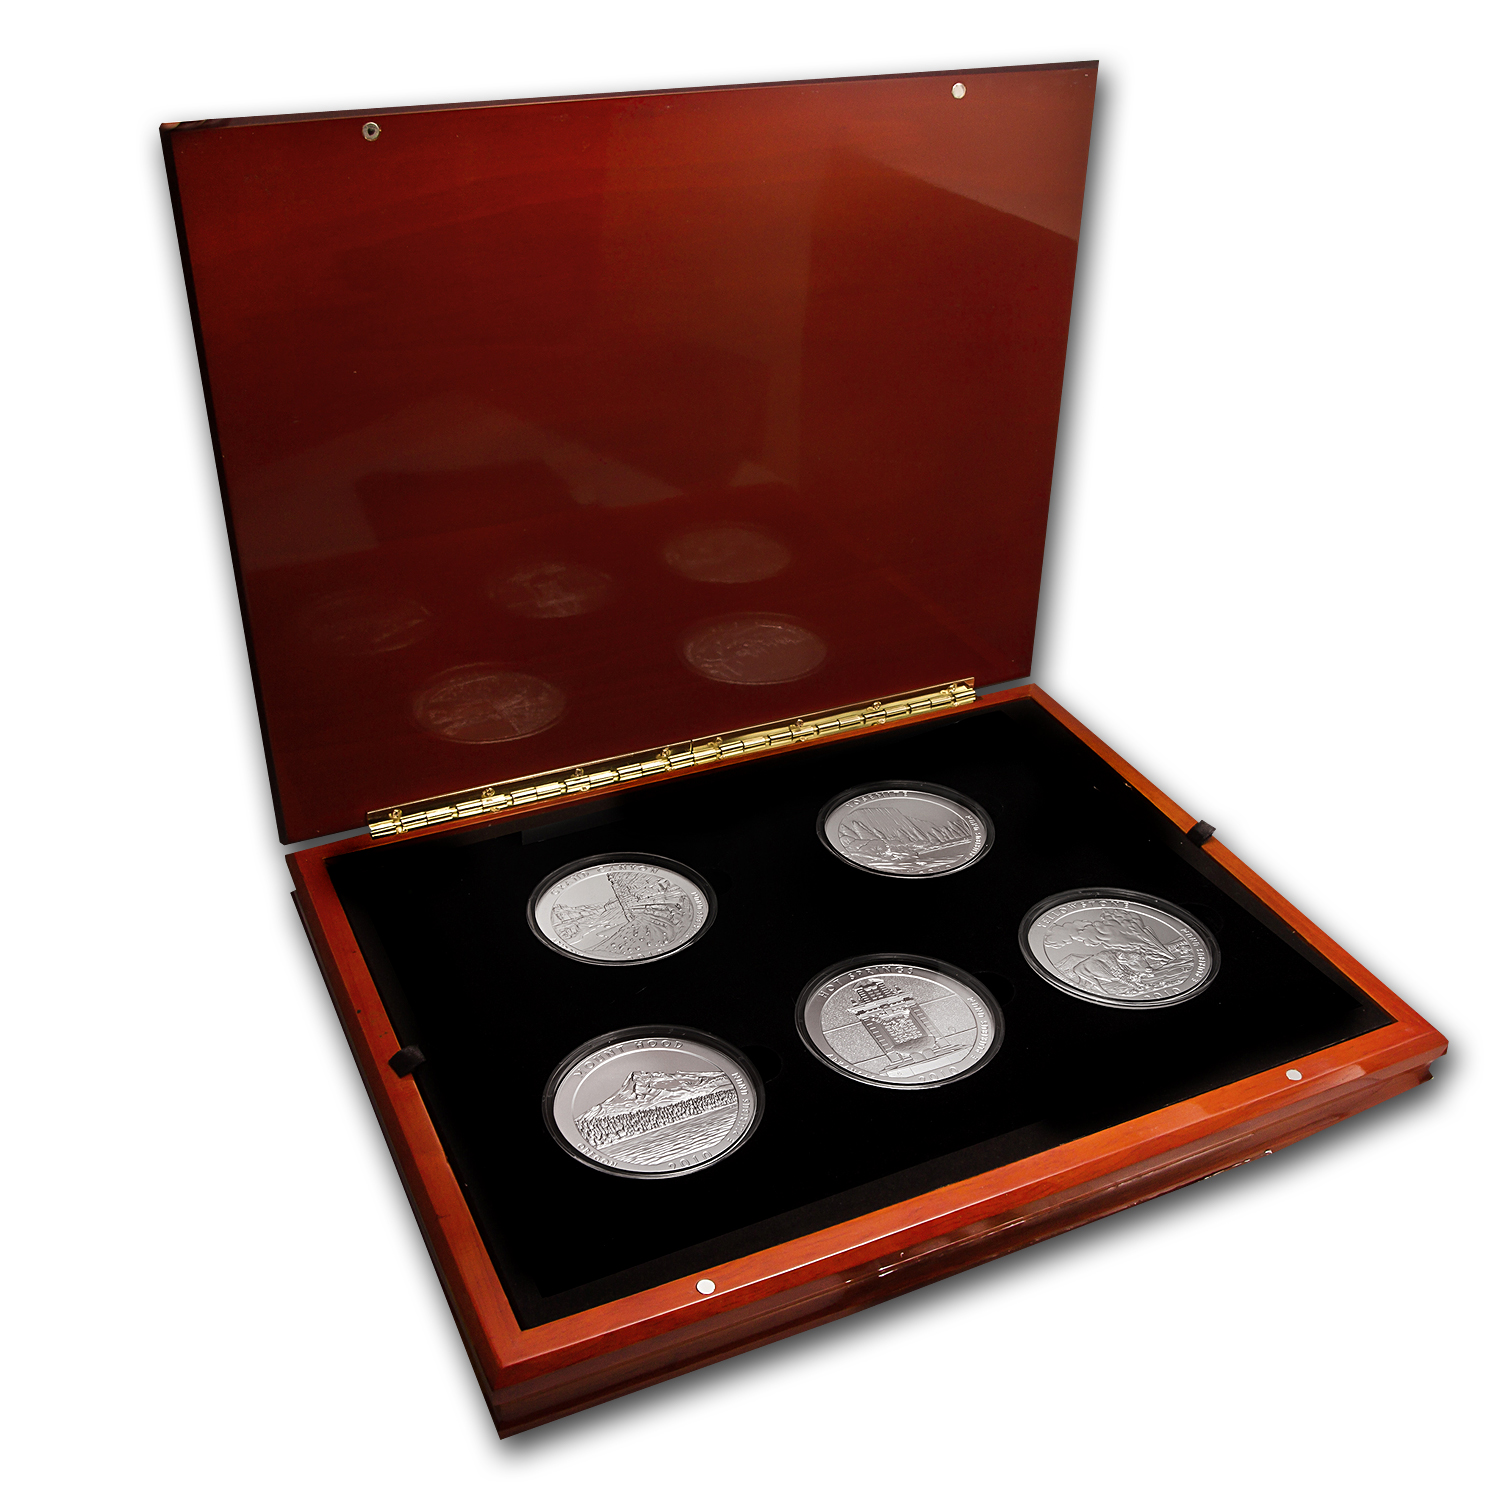 2010-P 5-Coin 5 oz Silver ATB Specimen Set (Elegant Display Box)